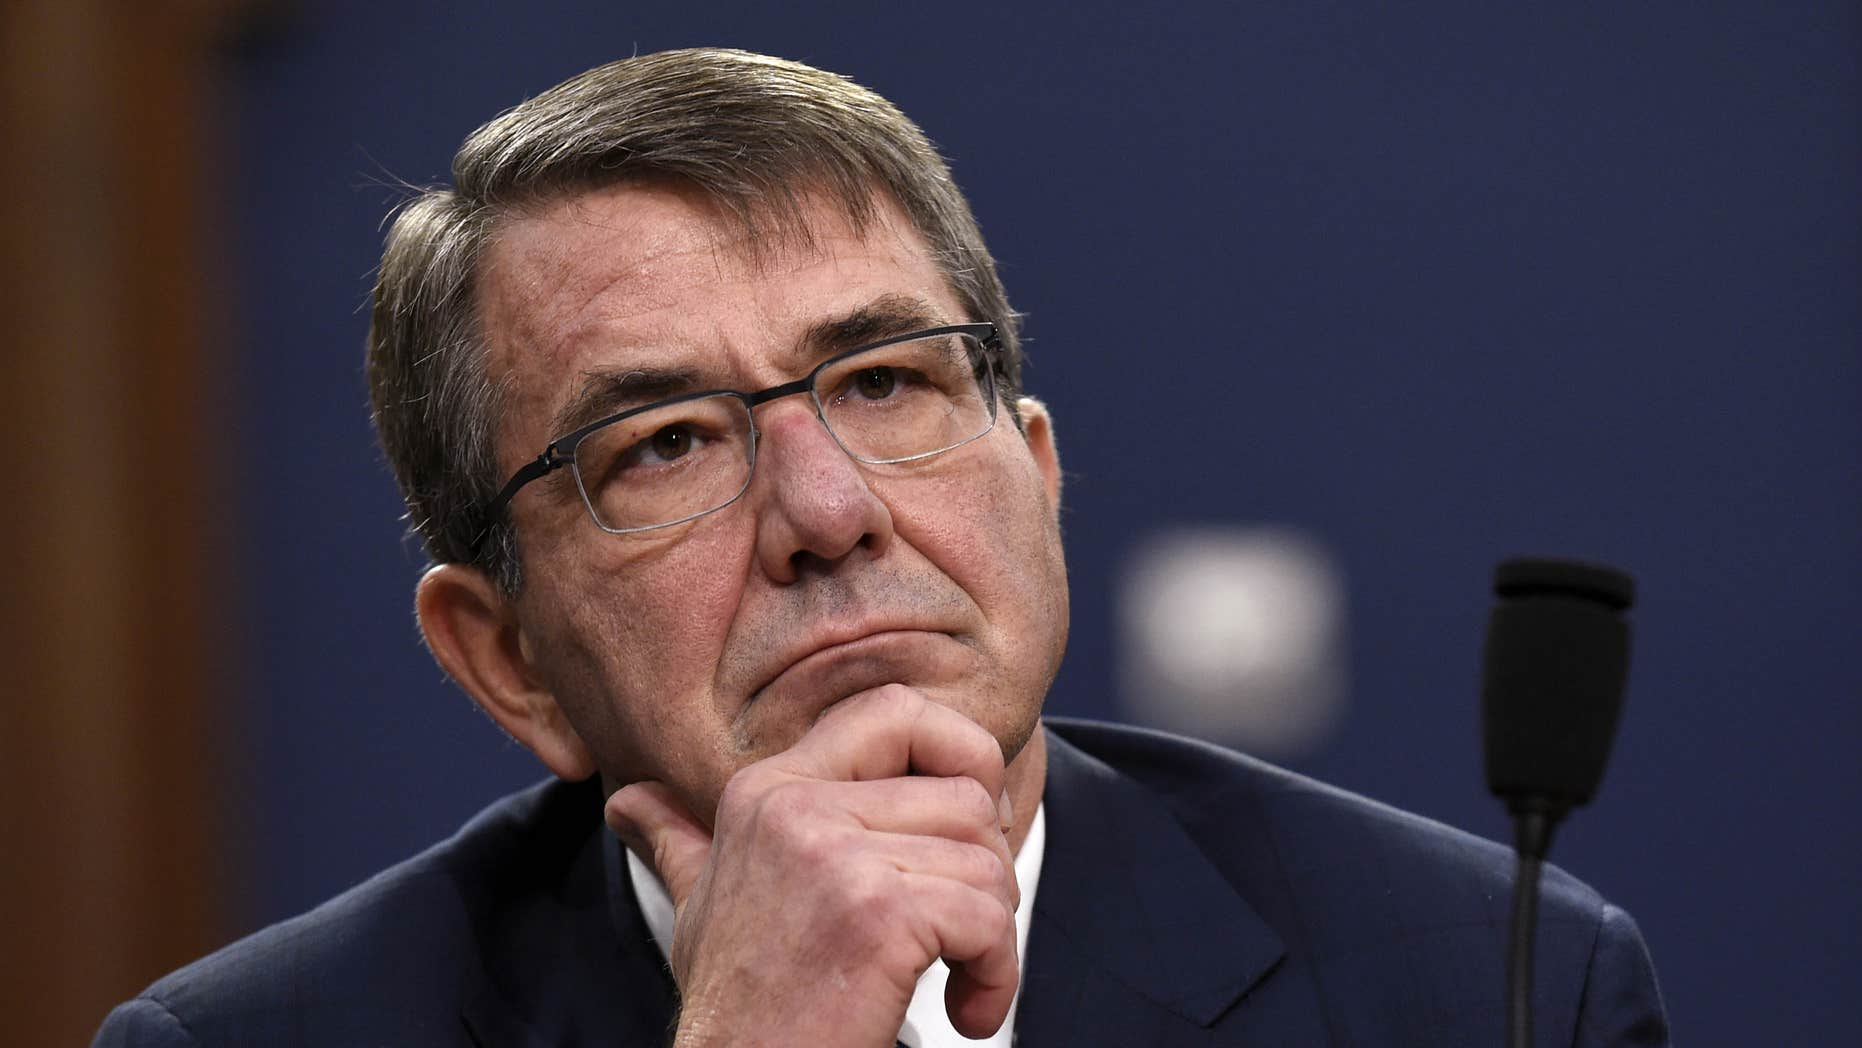 Feb. 25, 2016: Defense Secretary Ash Carter testifies before the House Appropriations subcommittee on the president's 2017 budget during a hearing on Capitol Hill in Washington.